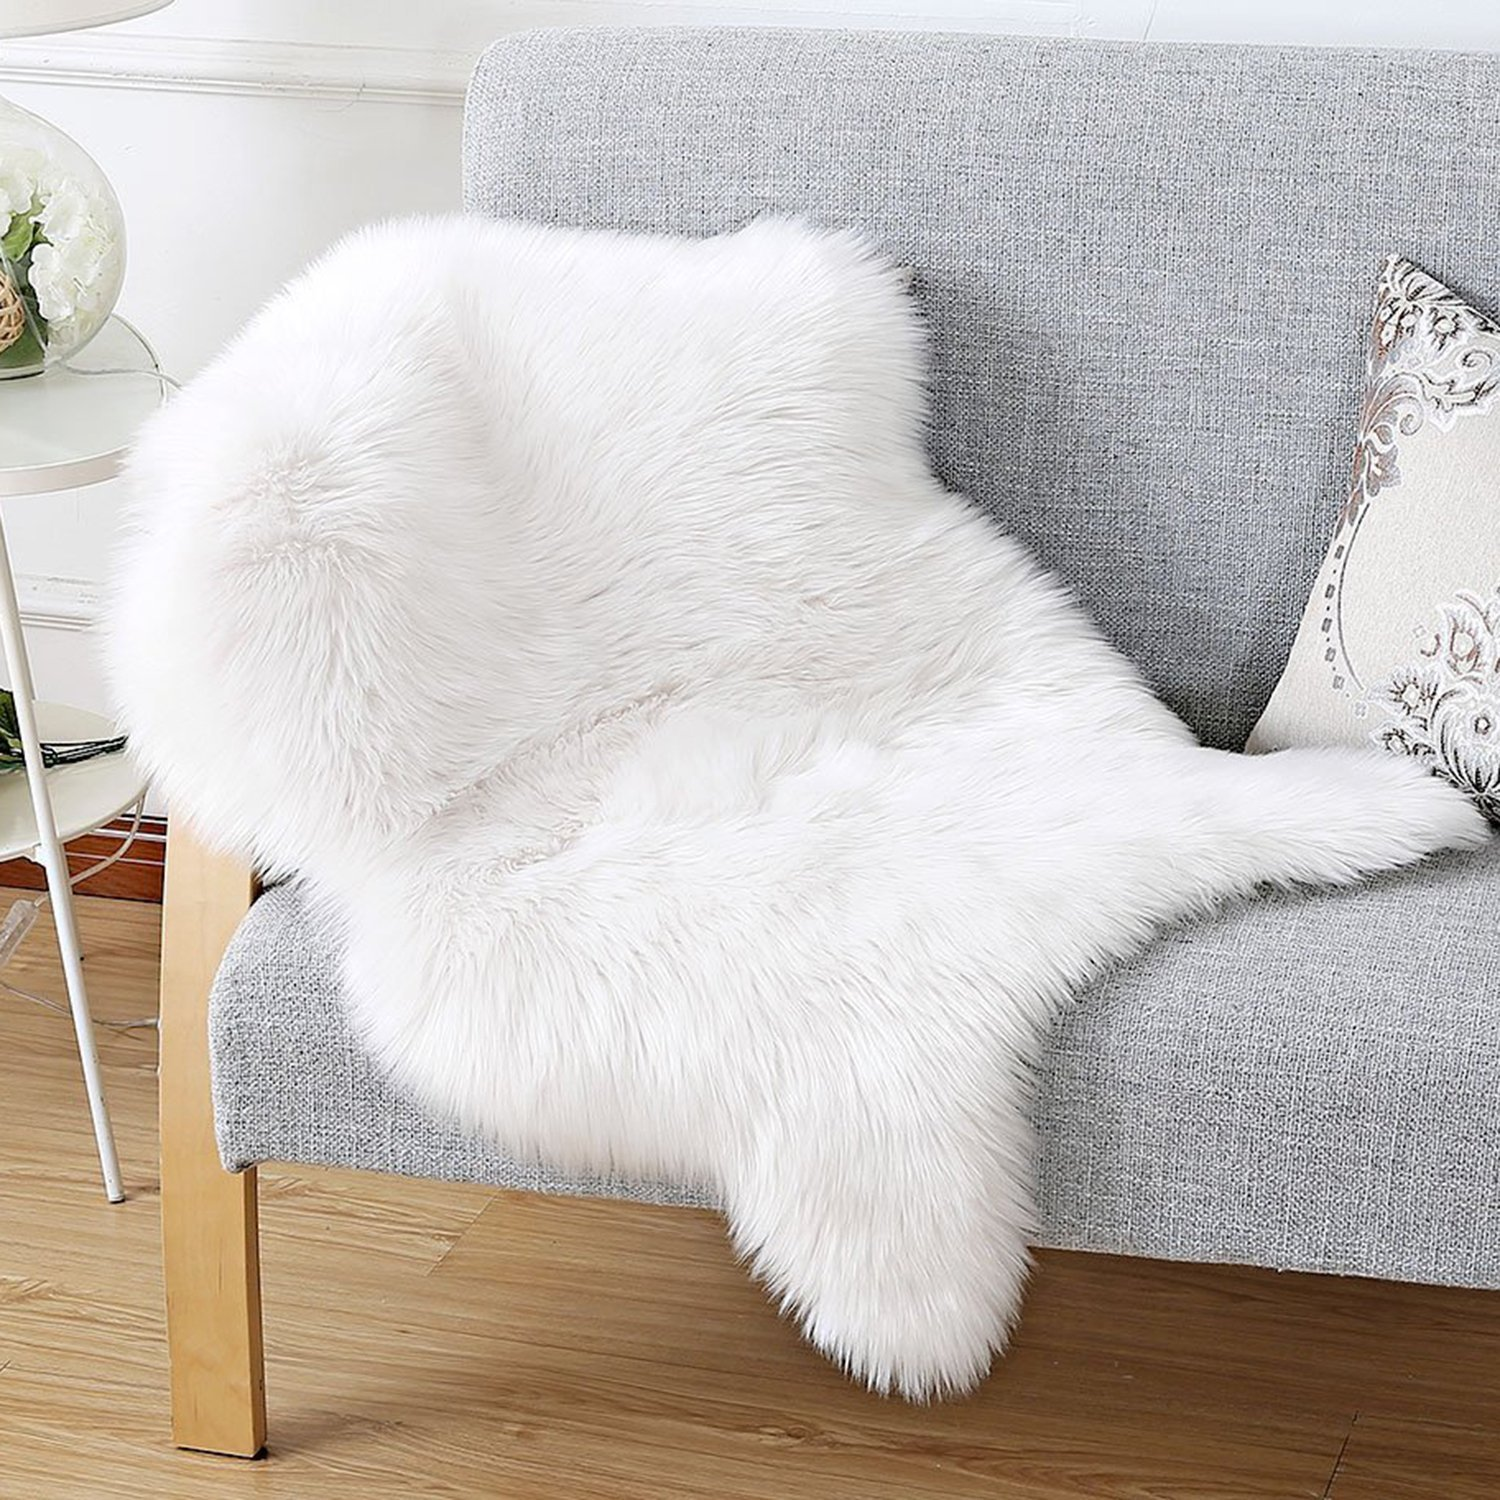 HAOCOO Faux Fur Rug White Shag Fuzzy Fluffy Sheepskin Kids Carpet with Super Fluffy Thick,Used As An Area Rug in Bedroom,Living Room Or Across Your Armchair Or Couch. 2ft. x 3ft. (Ivory White)